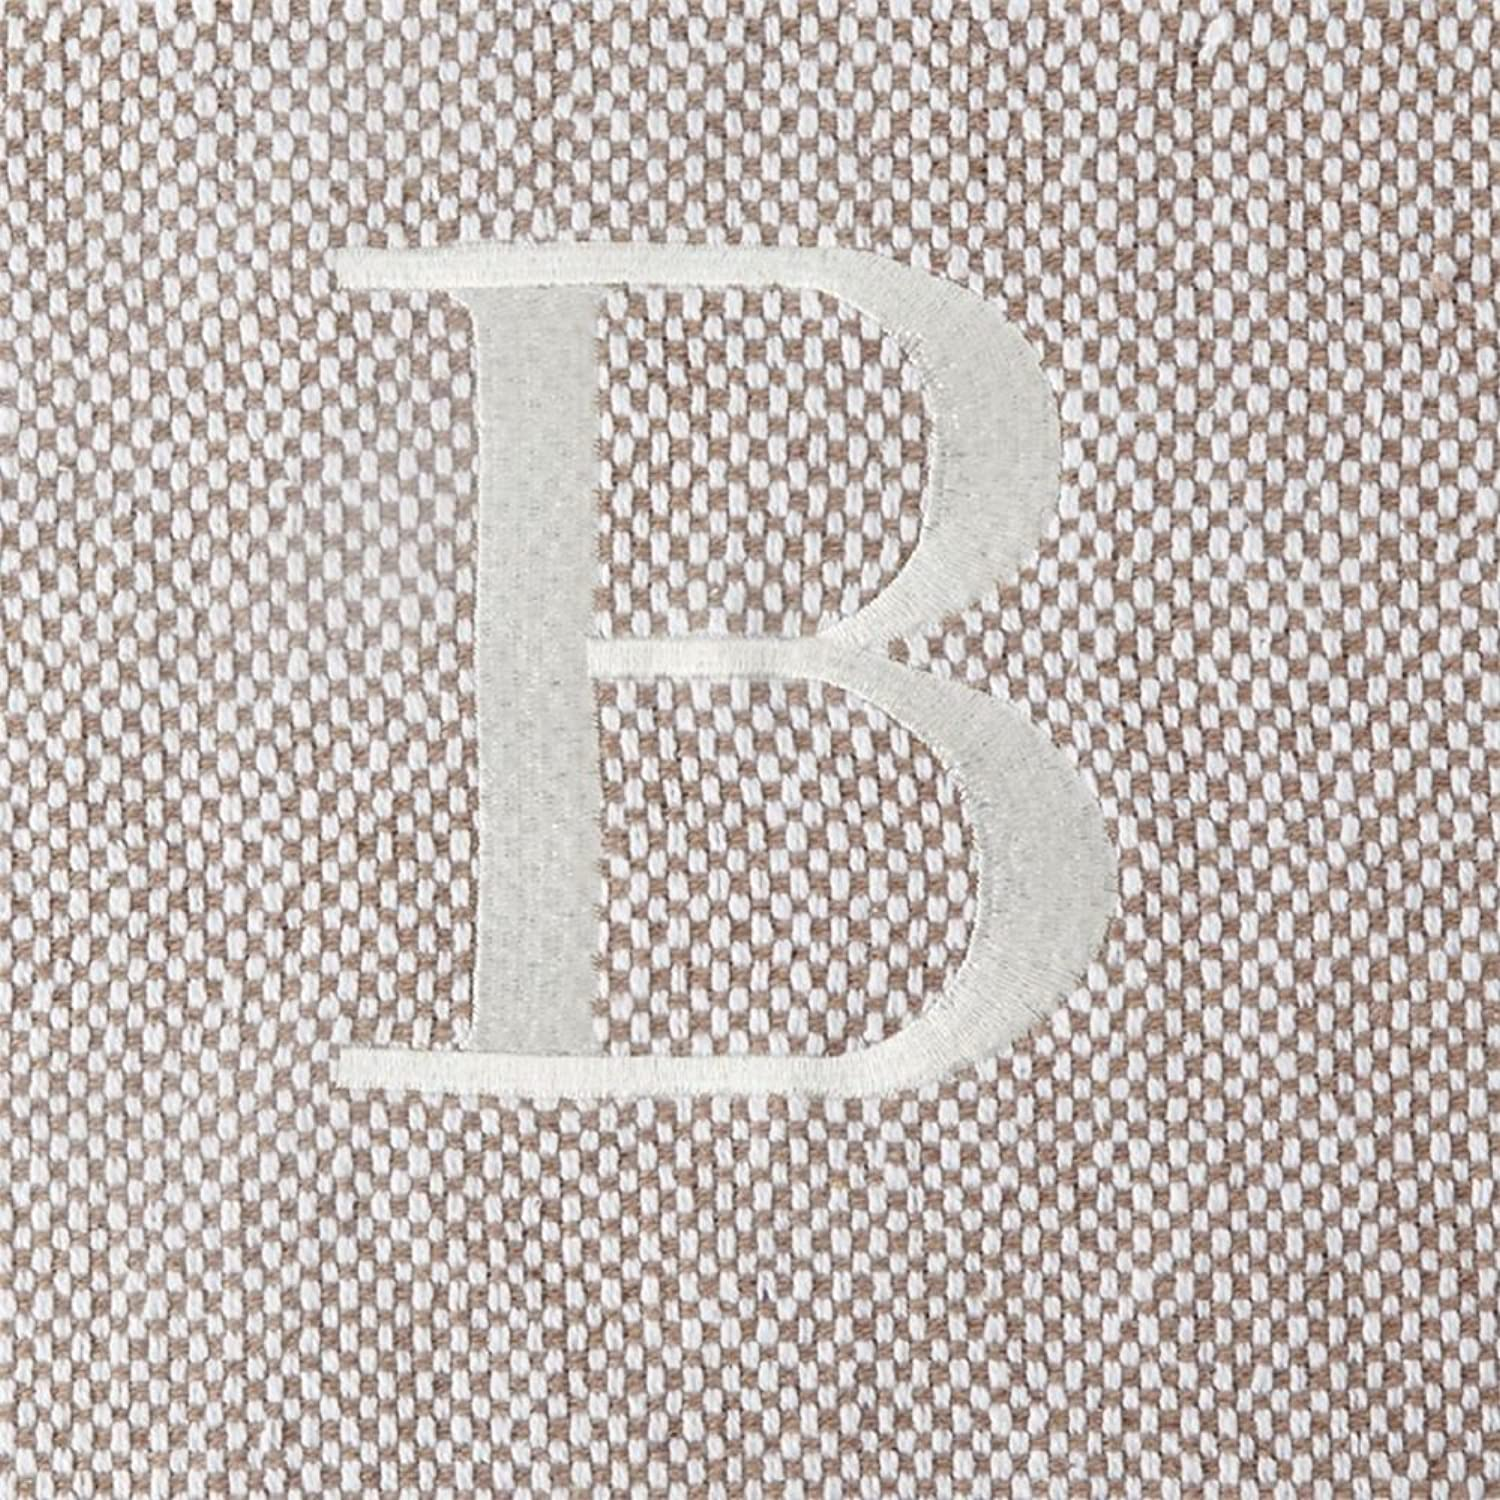 Mud Pie Woven Cotton Initial Throw Blanket, Taupe